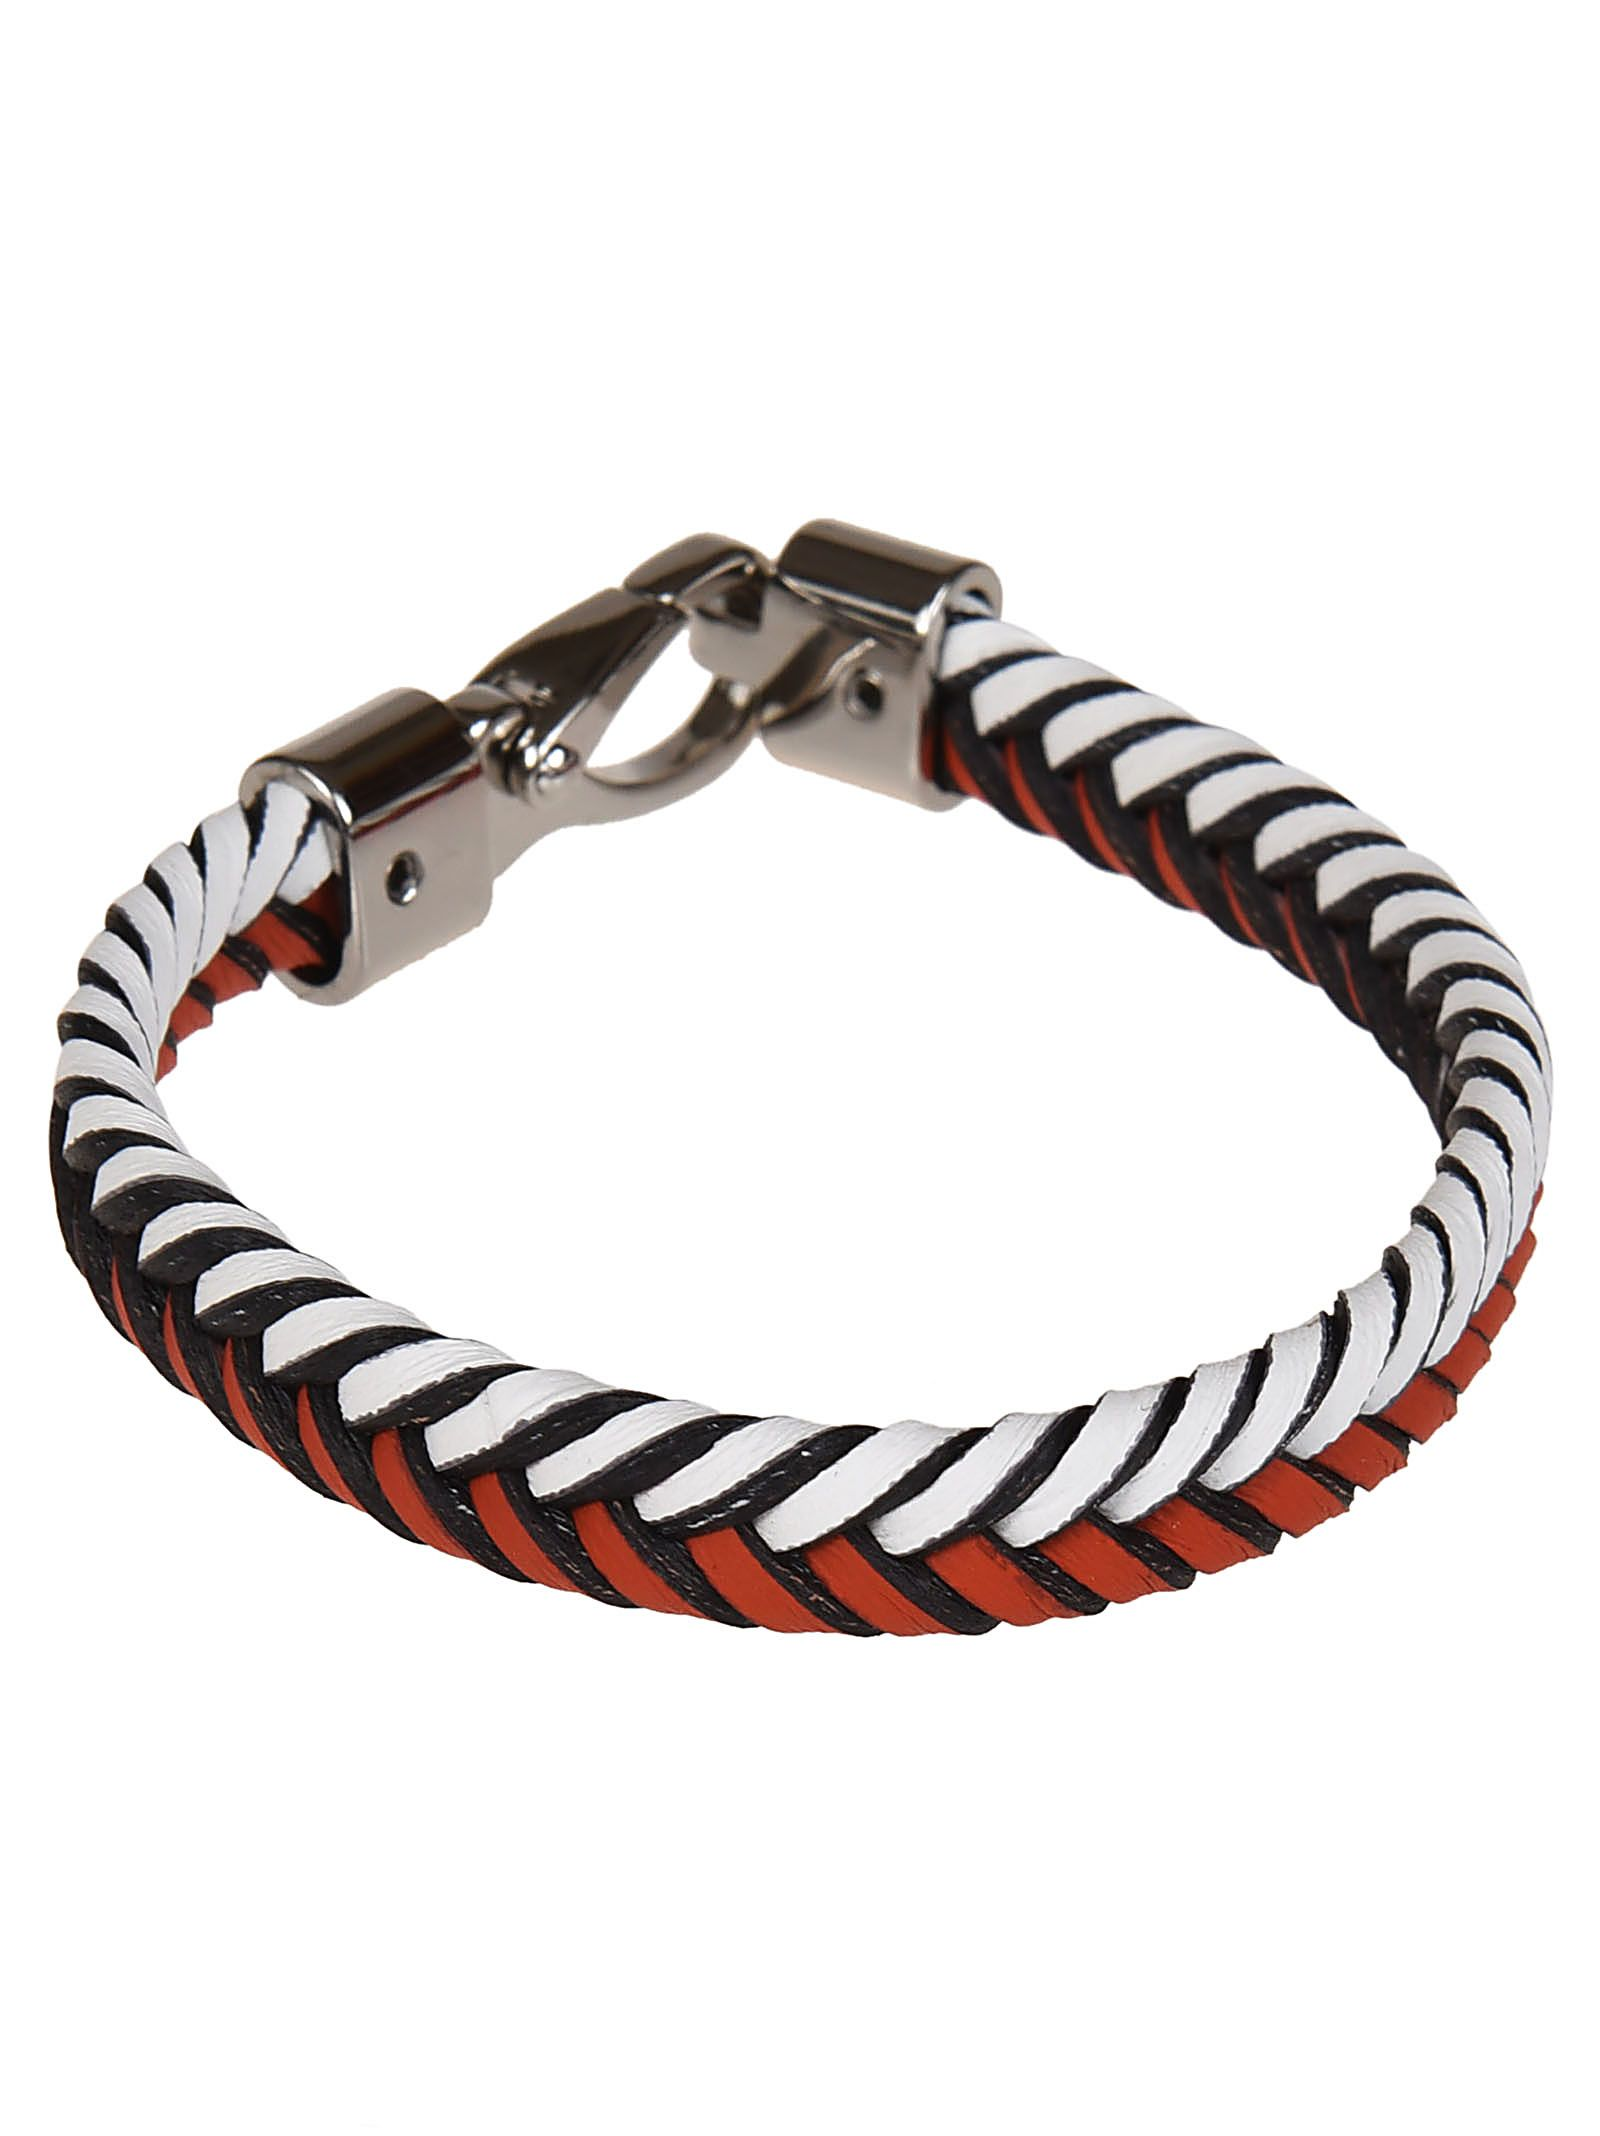 Tods Braided Wrap Bracelet